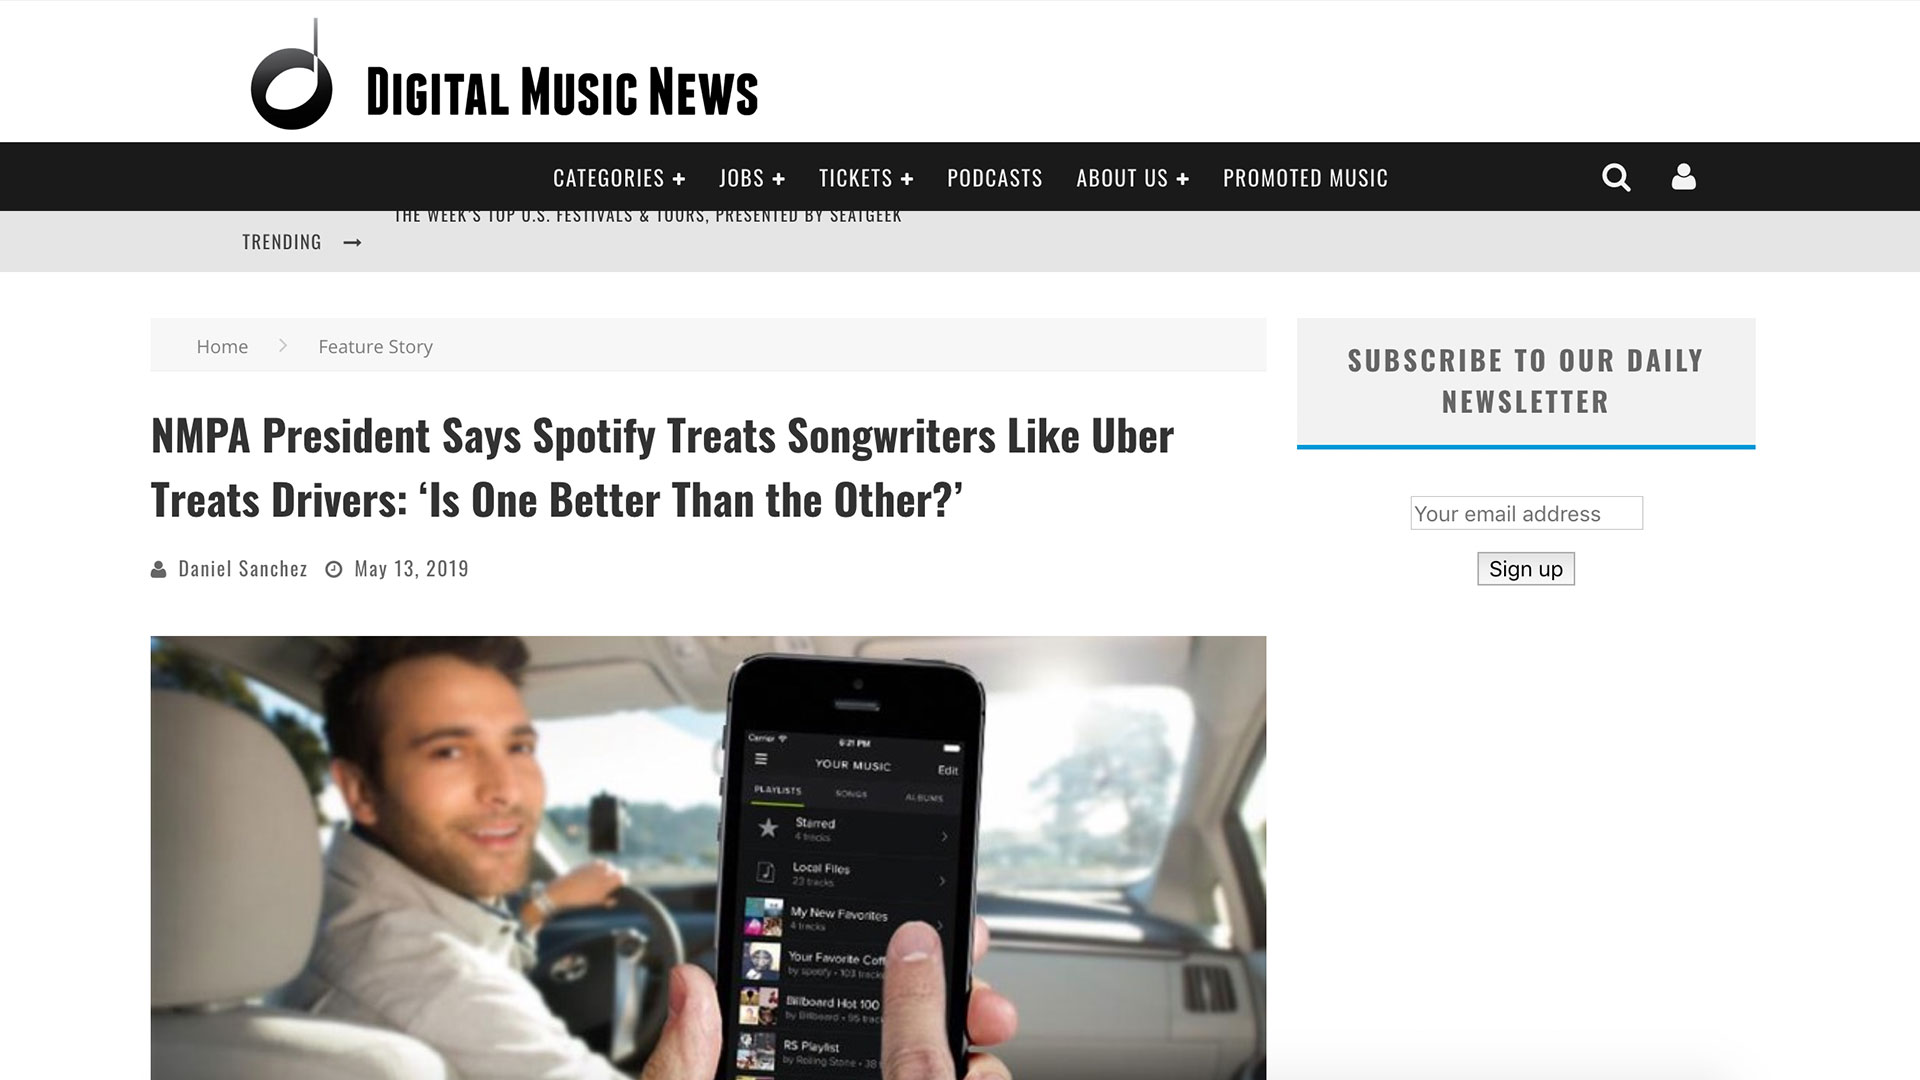 Fairness Rocks News NMPA President Says Spotify Treats Songwriters Like Uber Treats Drivers: 'Is One Better Than the Other?'